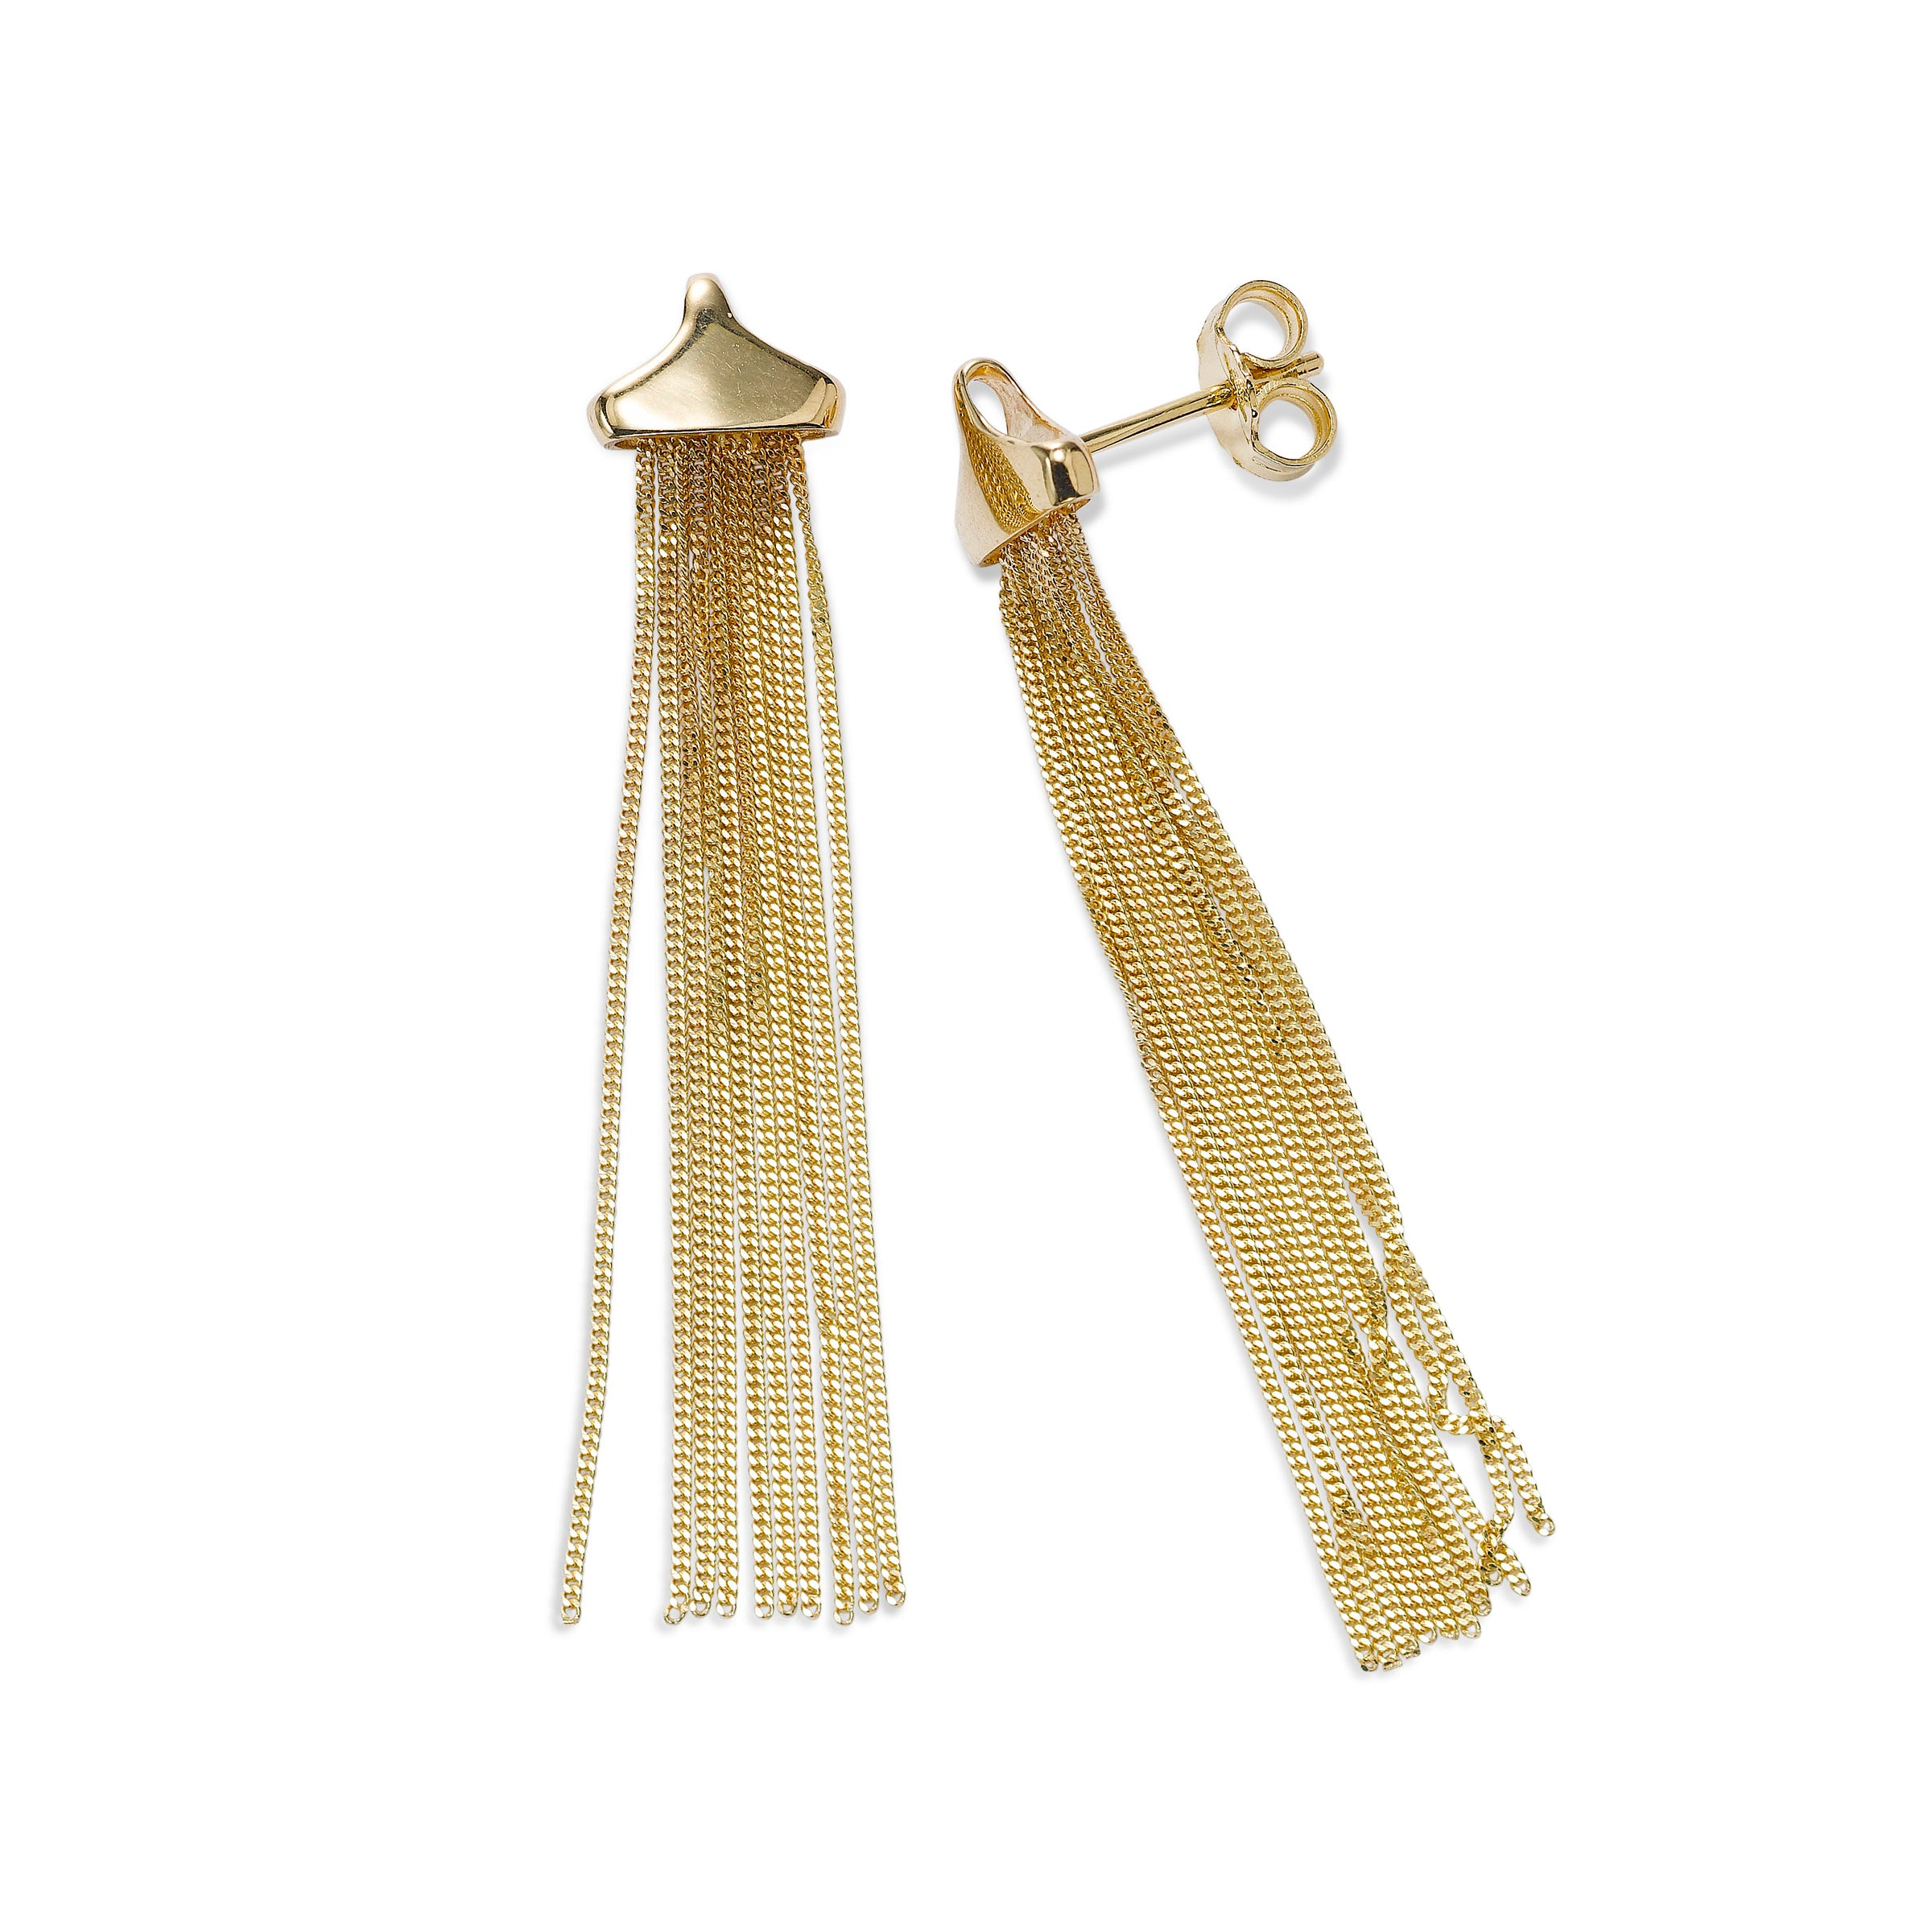 Tassel Dangle Earrings, 14K Yellow Gold